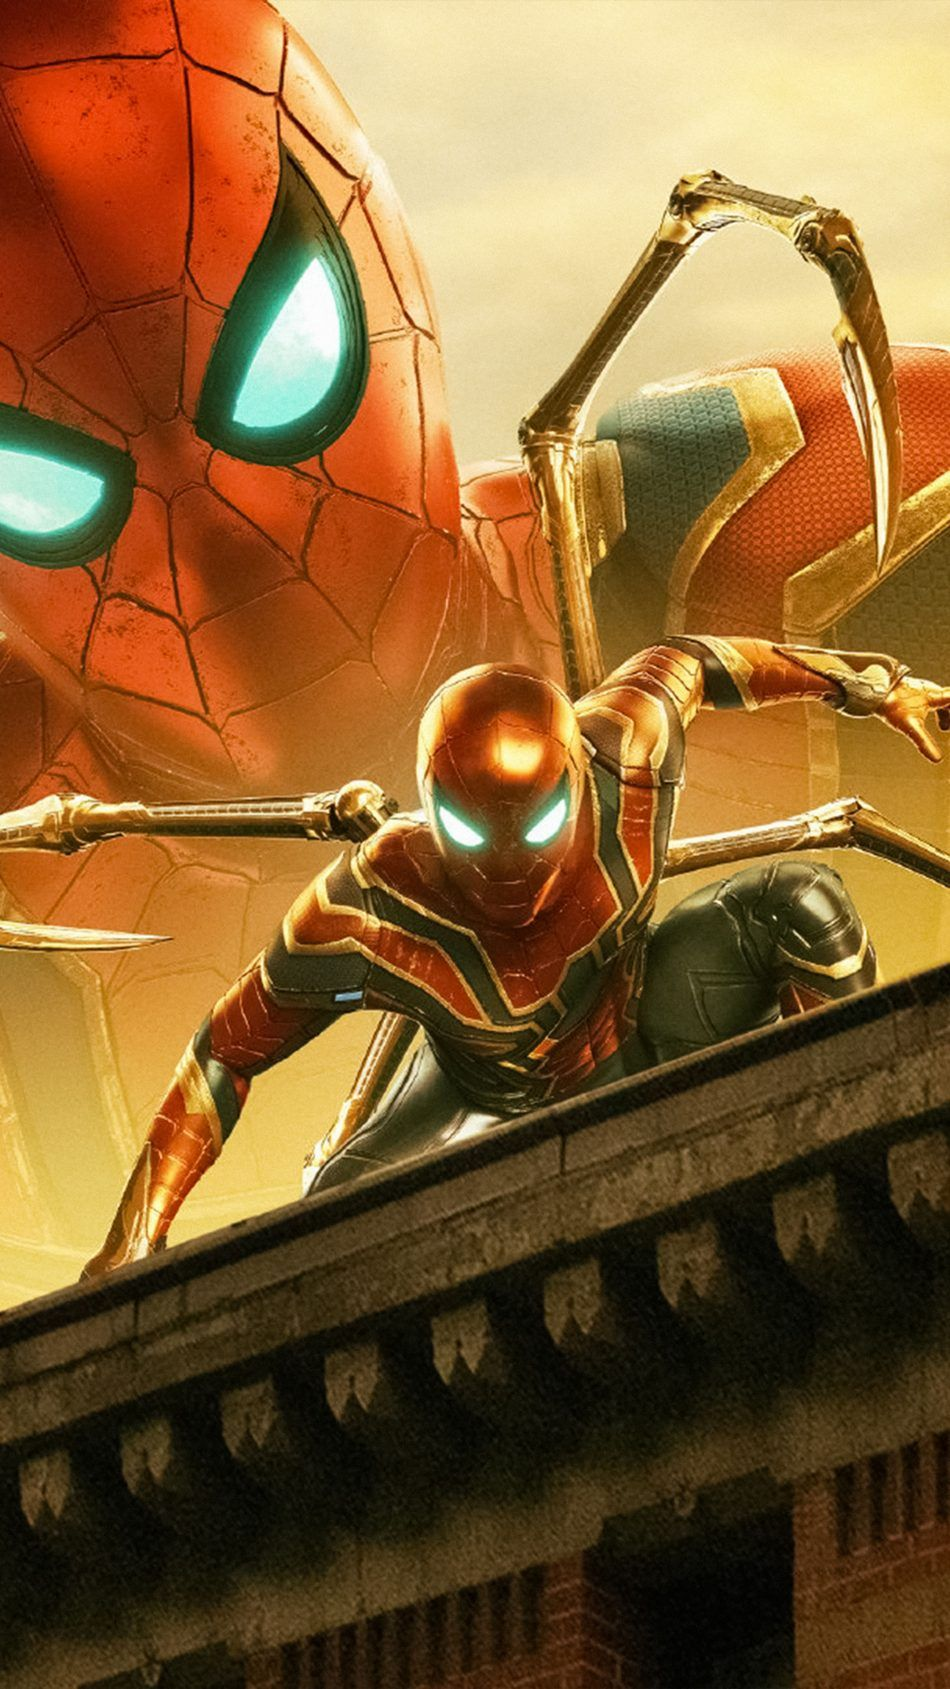 Iron Spider Spiderman Far From Home 2019 Iron spider